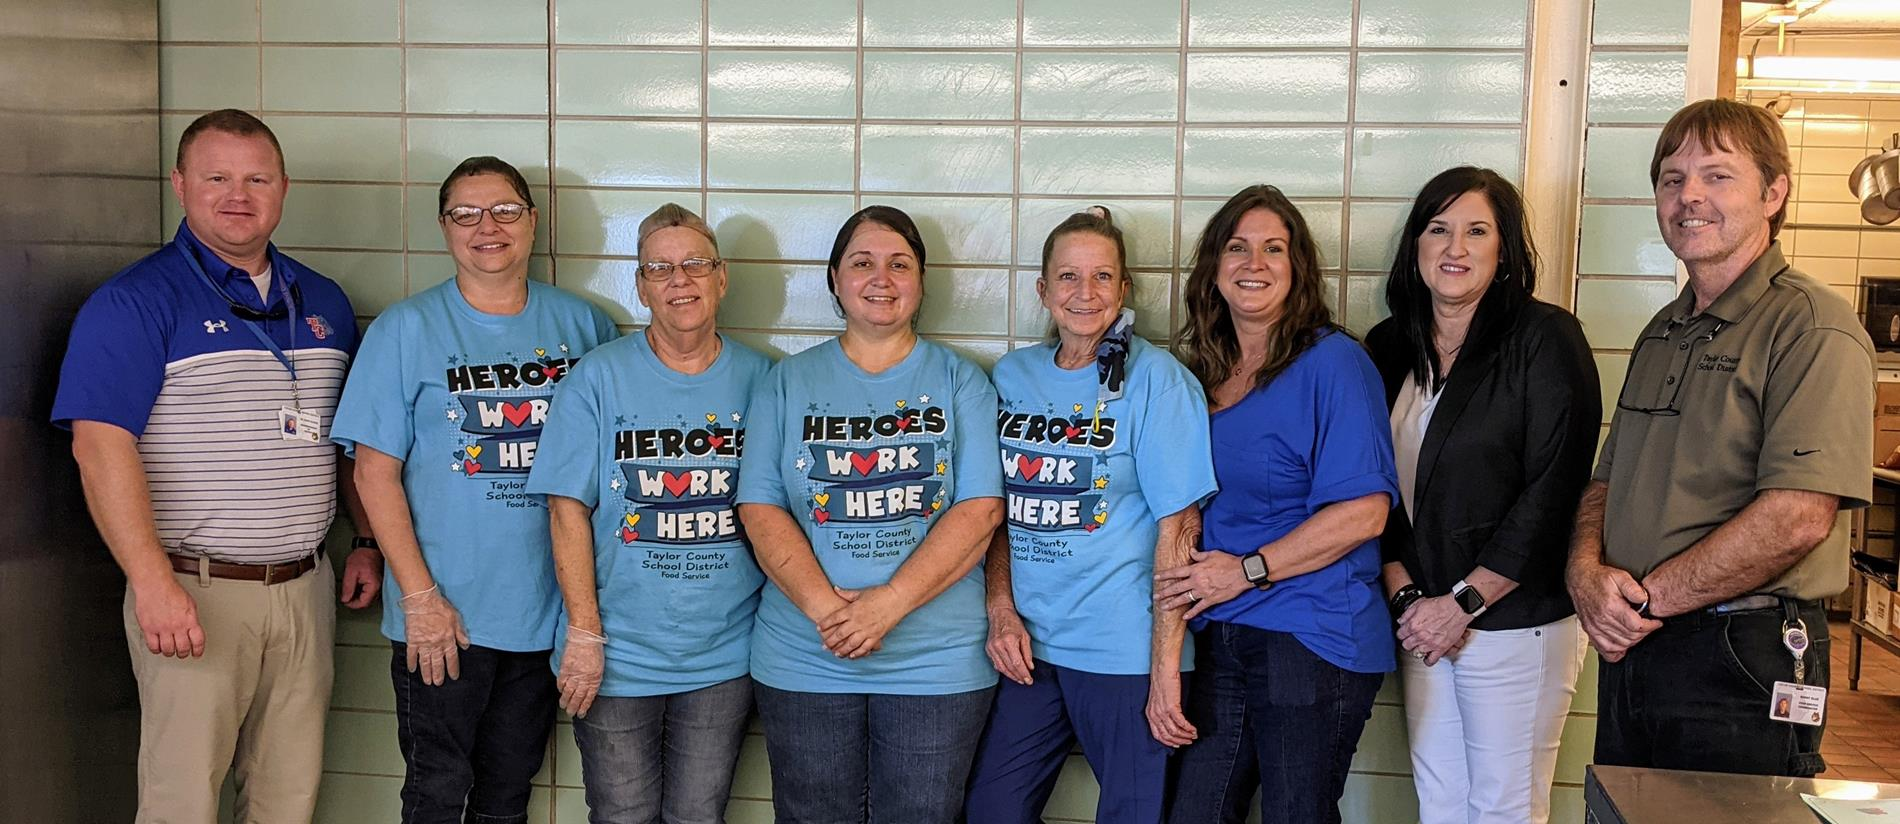 TCMS Lunchroom staff and administrators